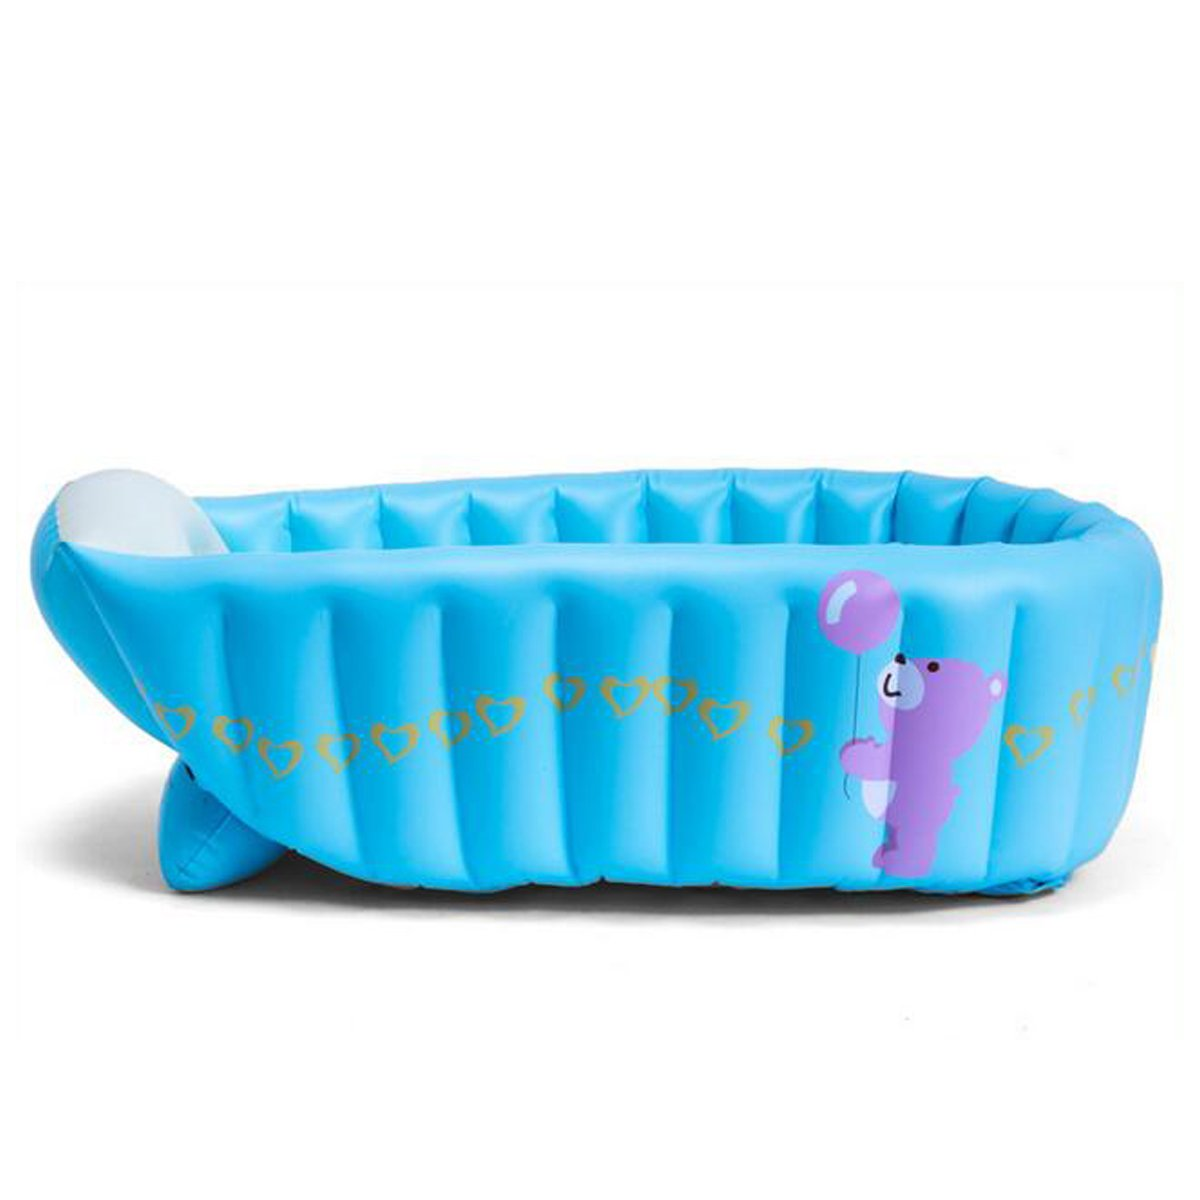 Amazon.com : Ecity Portable Inflatable Tub Infant-to-Toddler ...